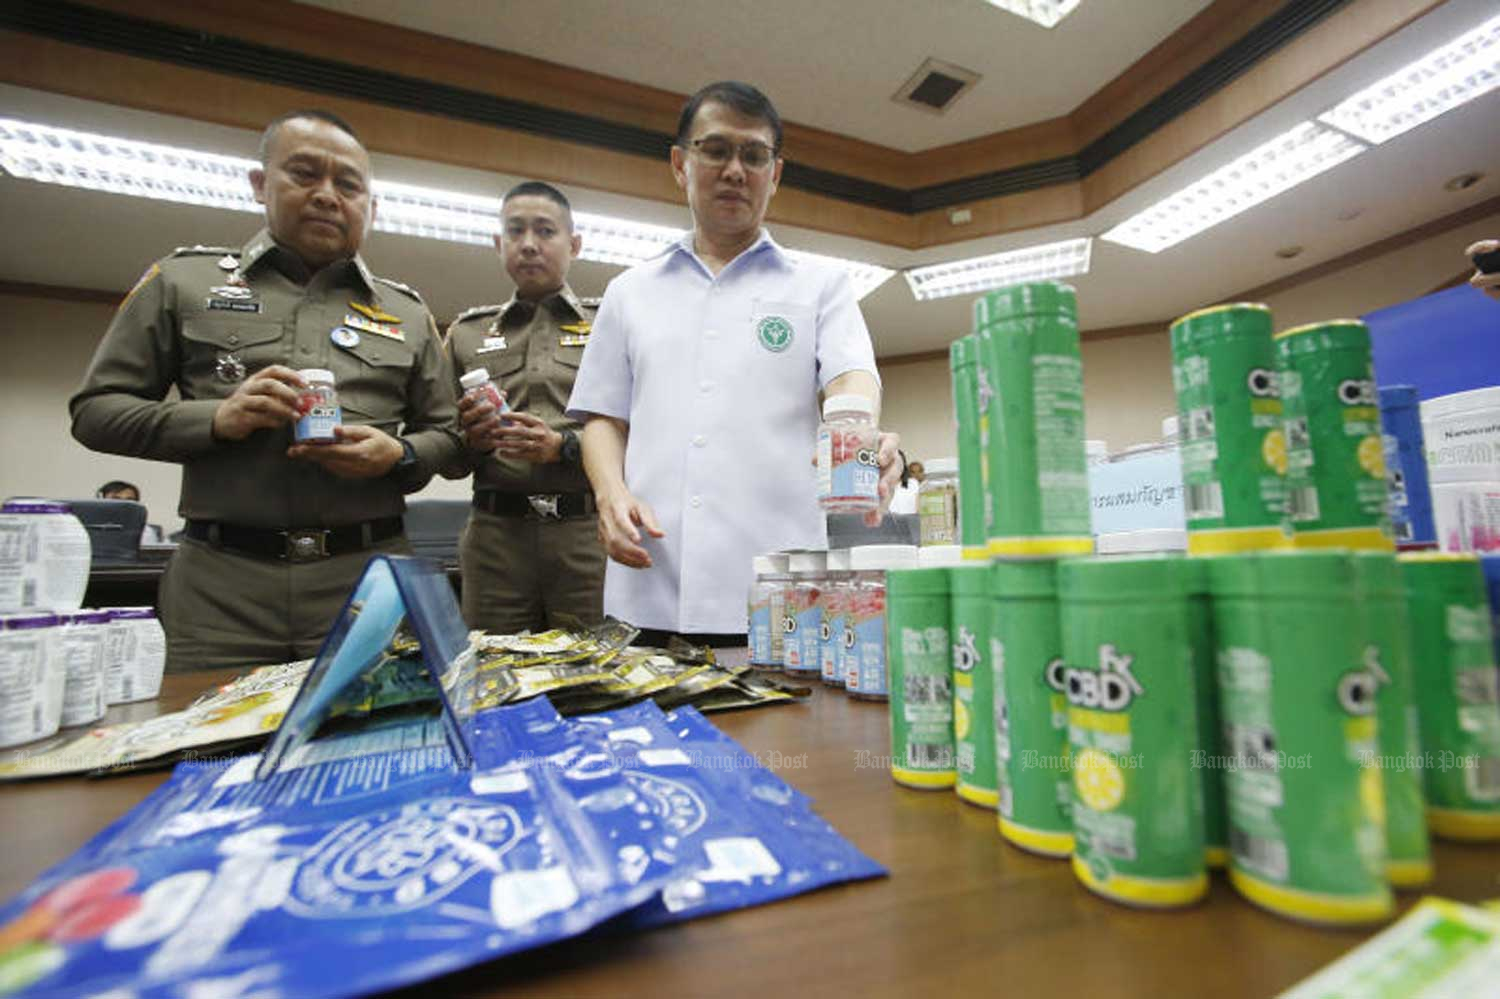 Food and Drug Administration secretary-general Dr Paisarn Dunkum, right, displays products allegedly containing cannabis during a press conference at the FDA head office in Nonthaburi province. (Photo by Pornprom Satrabhaya)